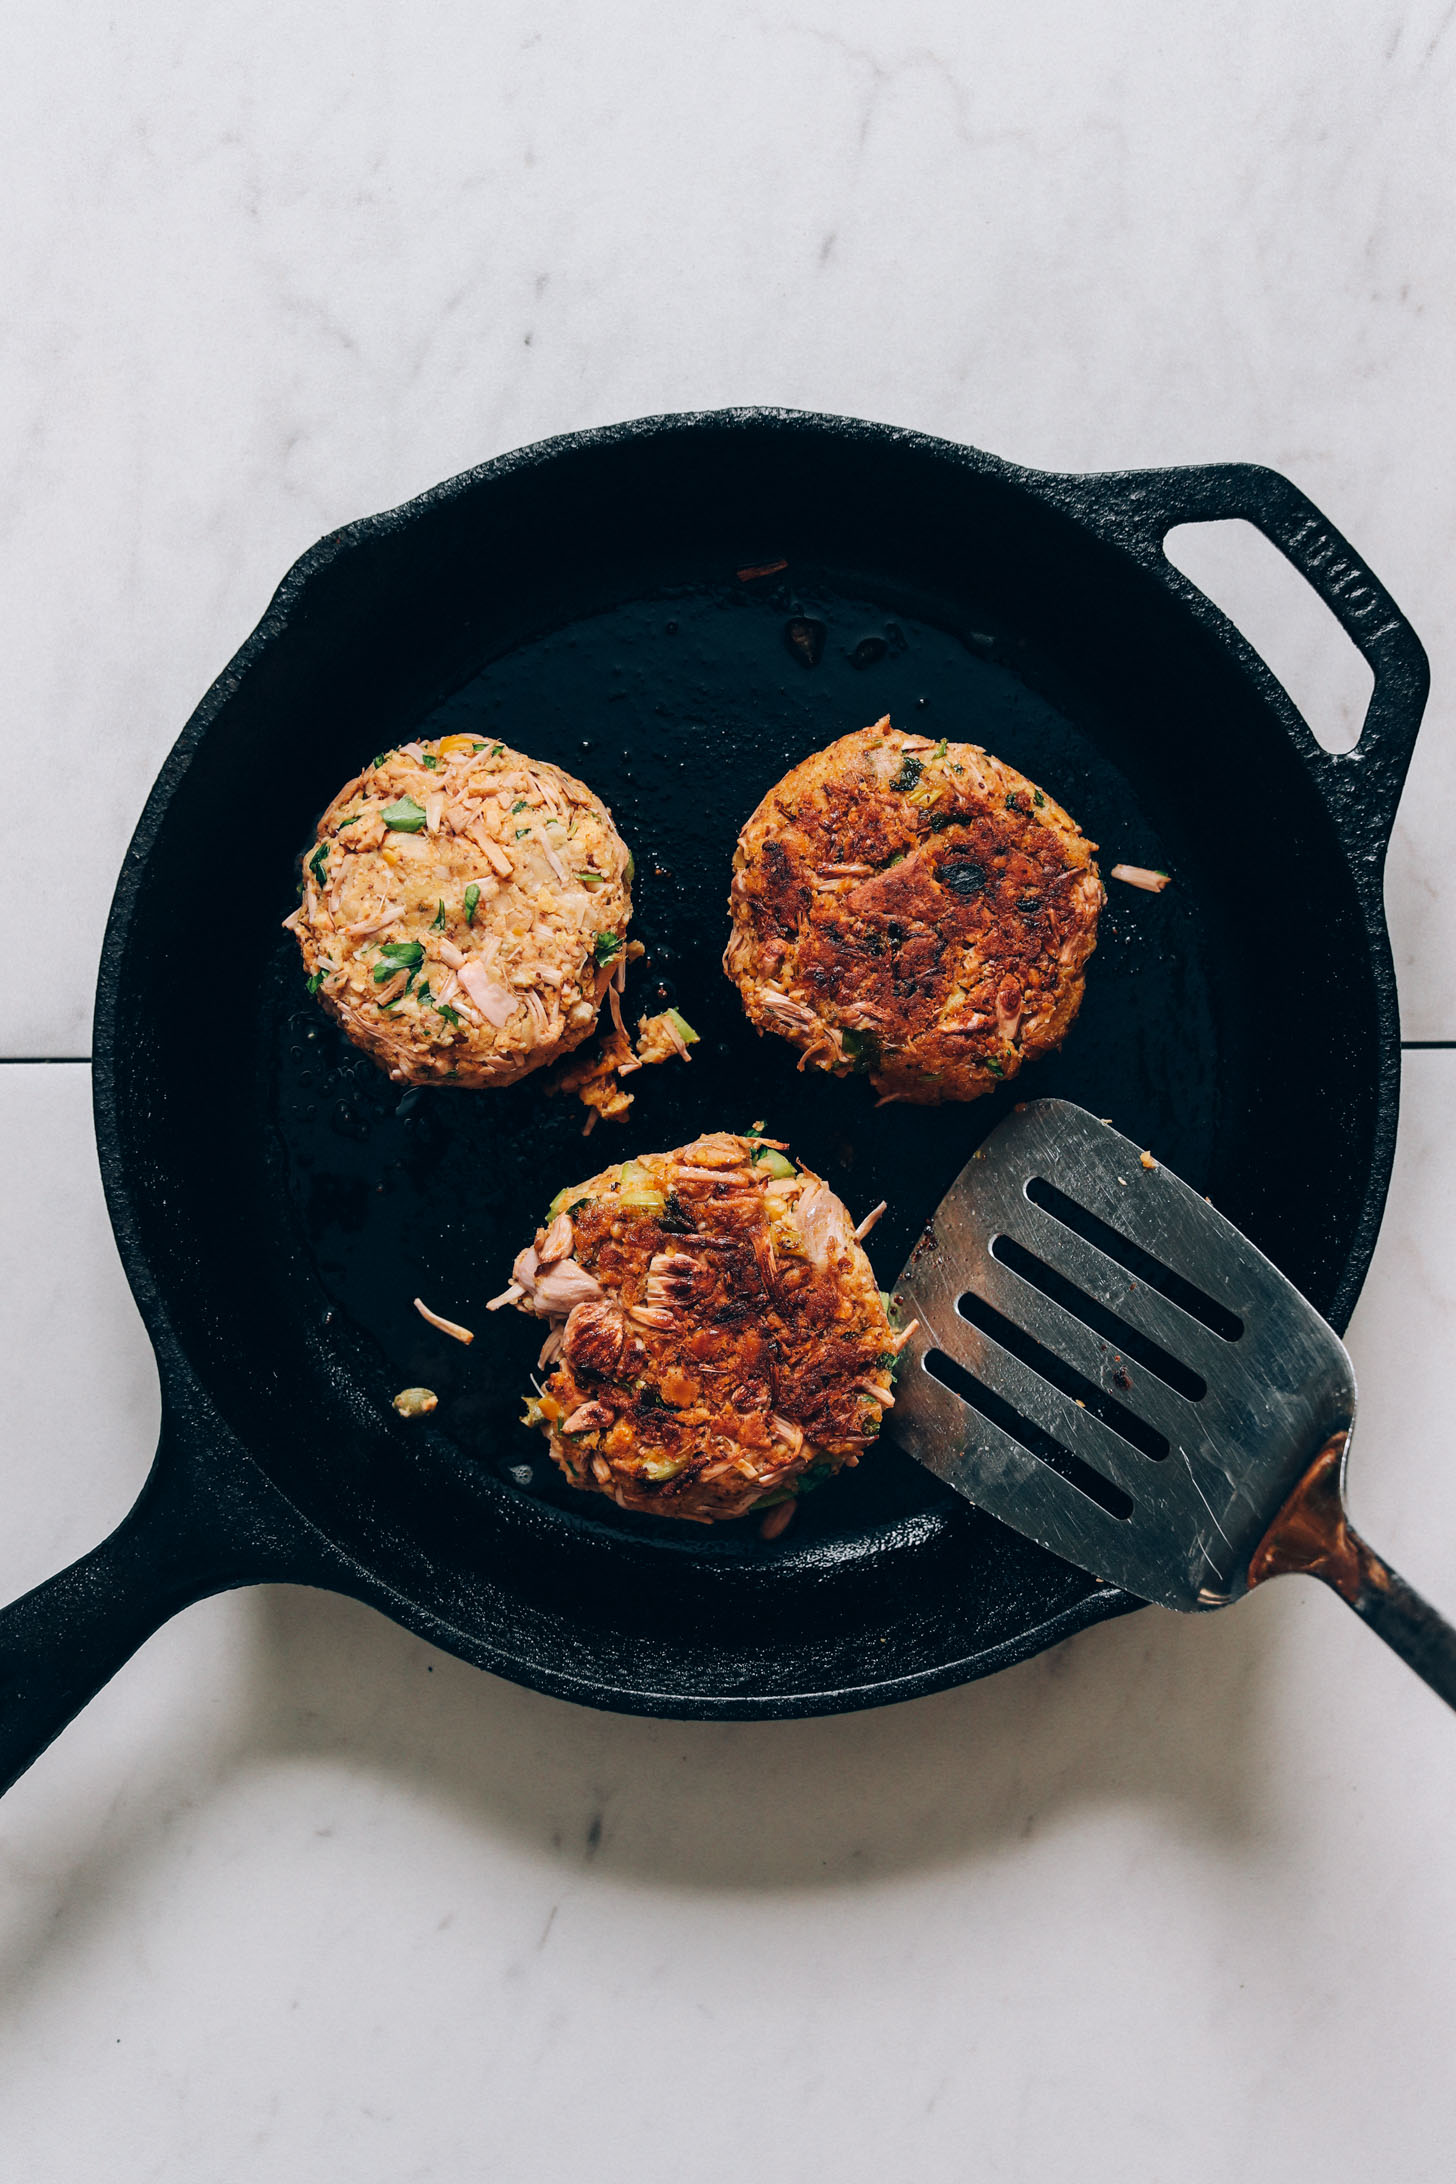 Cooking vegan crab cakes in a cast iron skillet